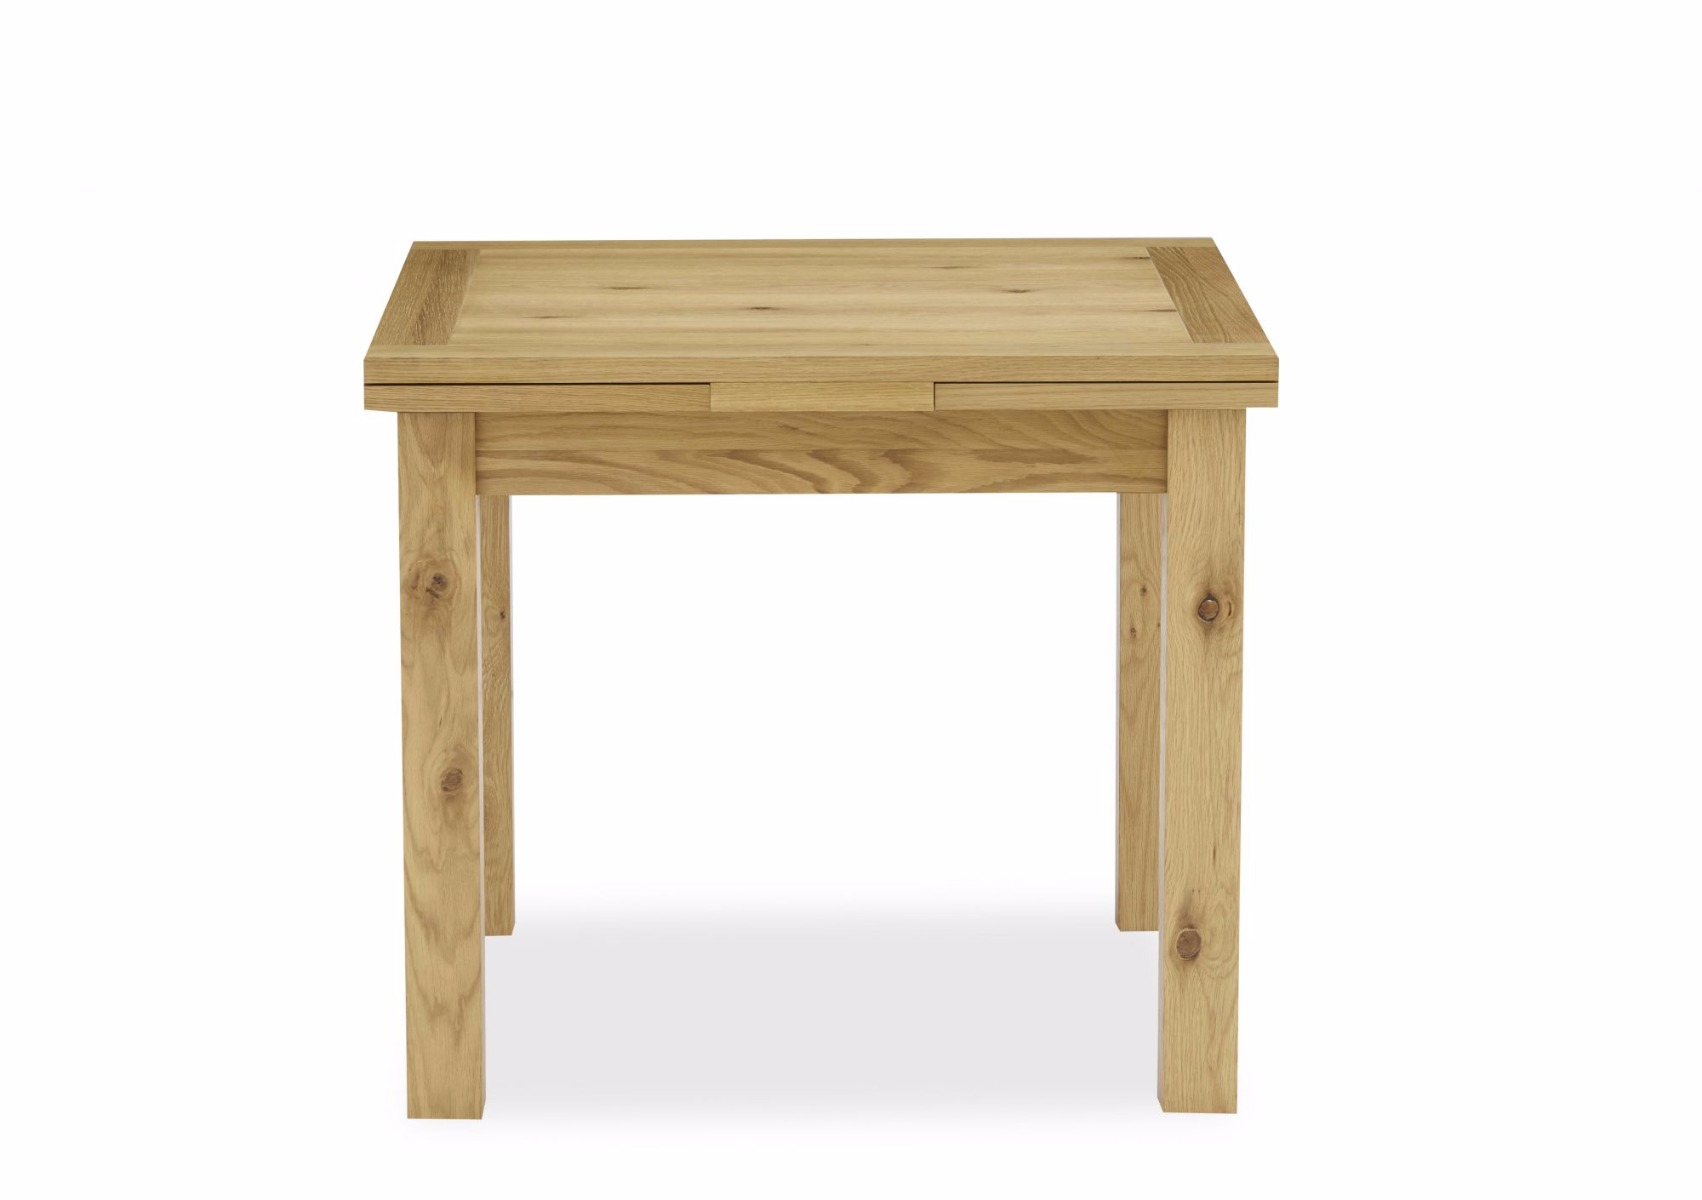 https://www.firstfurniture.co.uk/pub/media/catalog/product/8/8/8871-1-c2.jpg